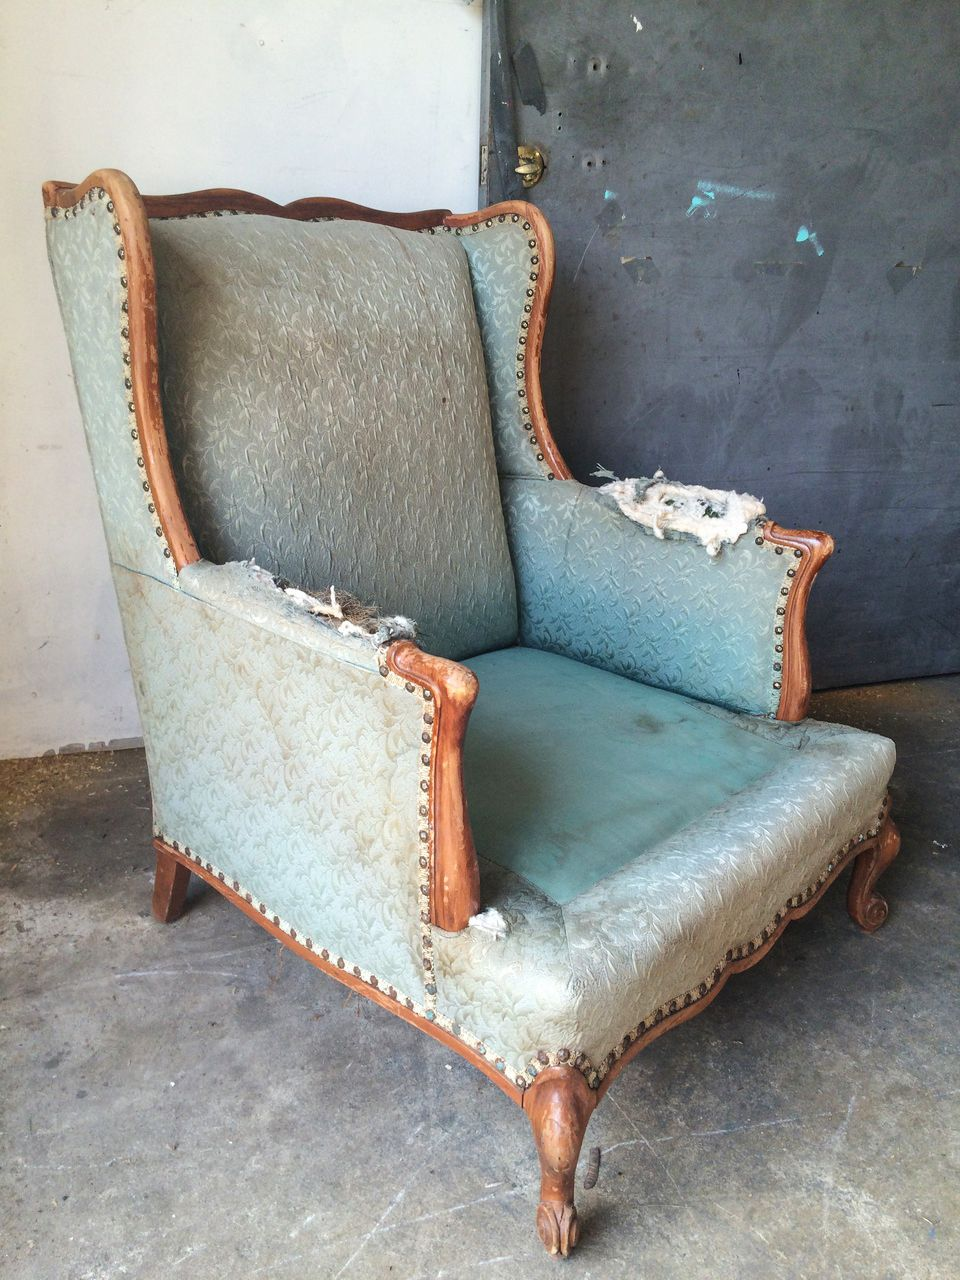 reuse old chairs patio furniture